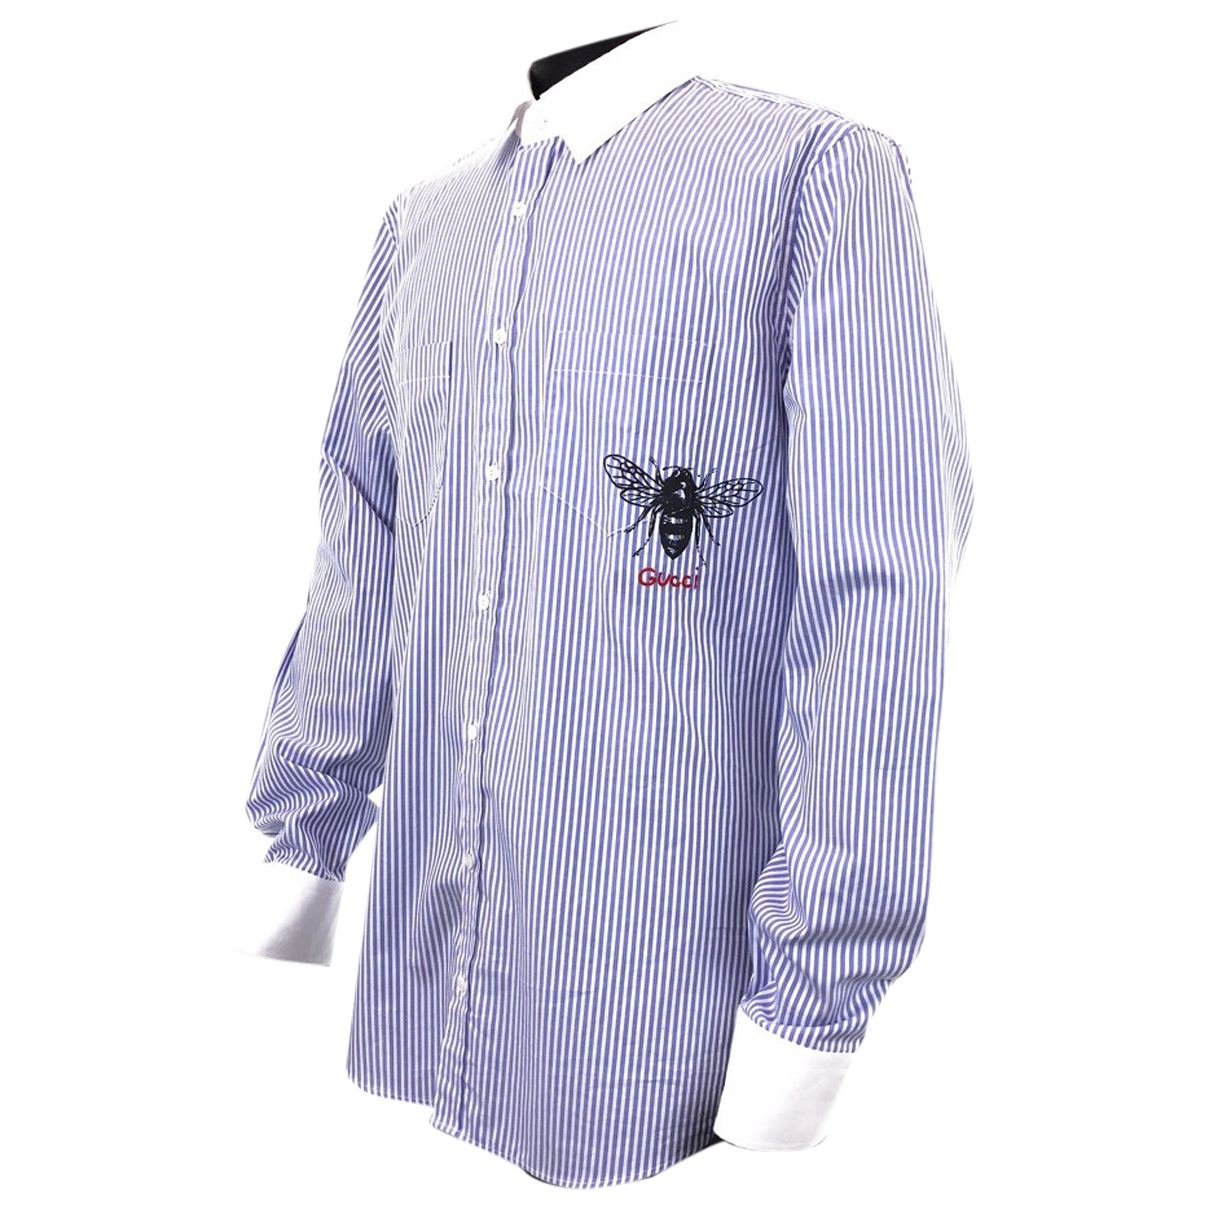 Gucci \N Cotton T-shirts for Men L International